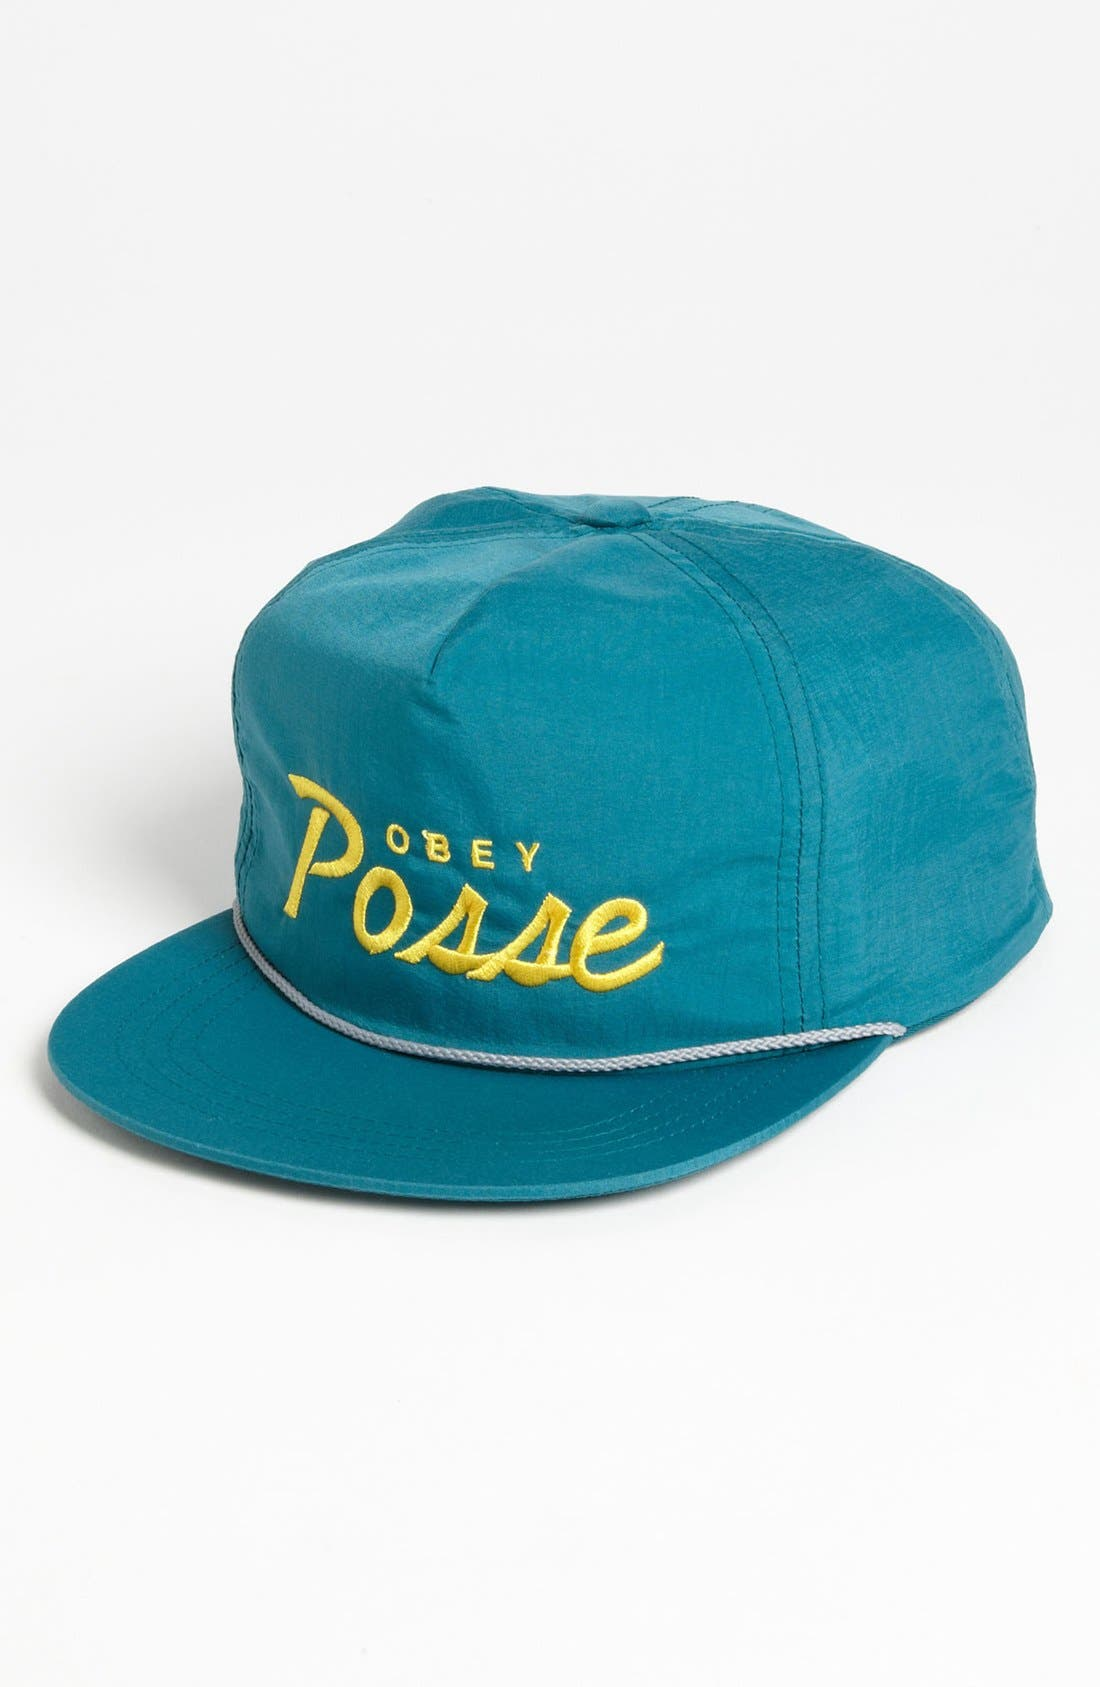 Main Image - Obey 'Posse' Snapback Hat